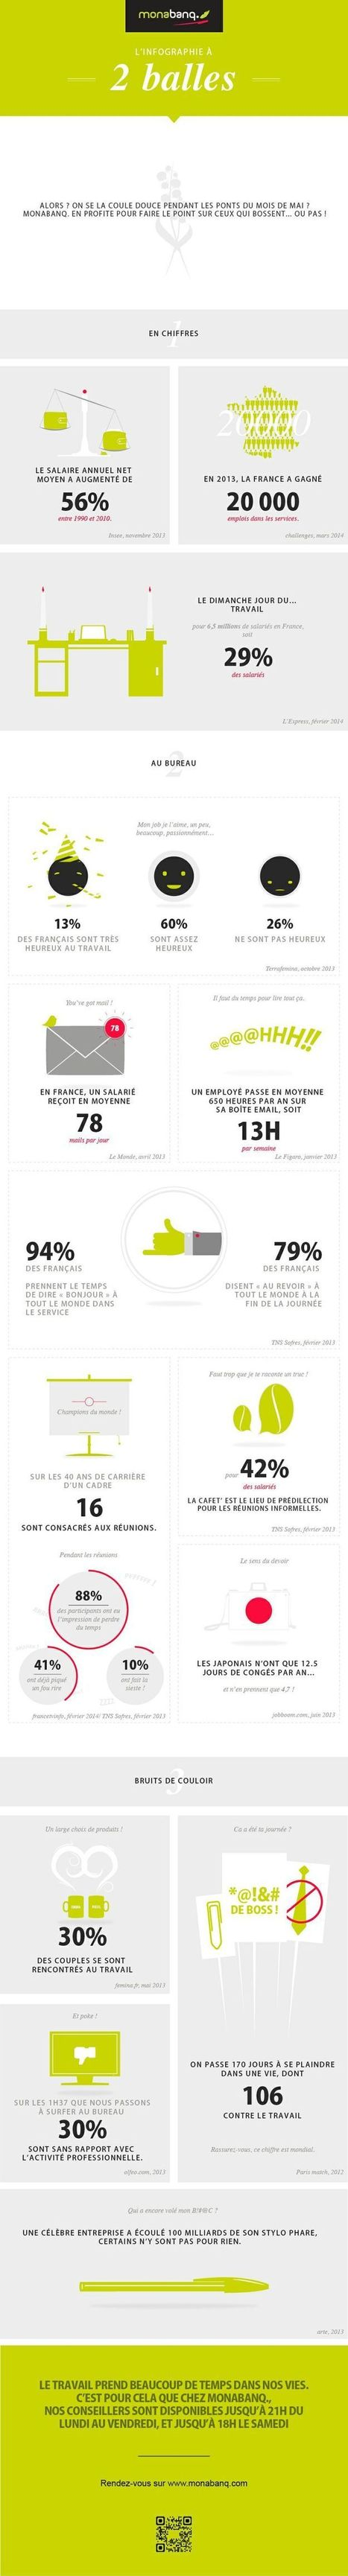 L'infographie à 2 balles | Innovative workplace solutions | Scoop.it